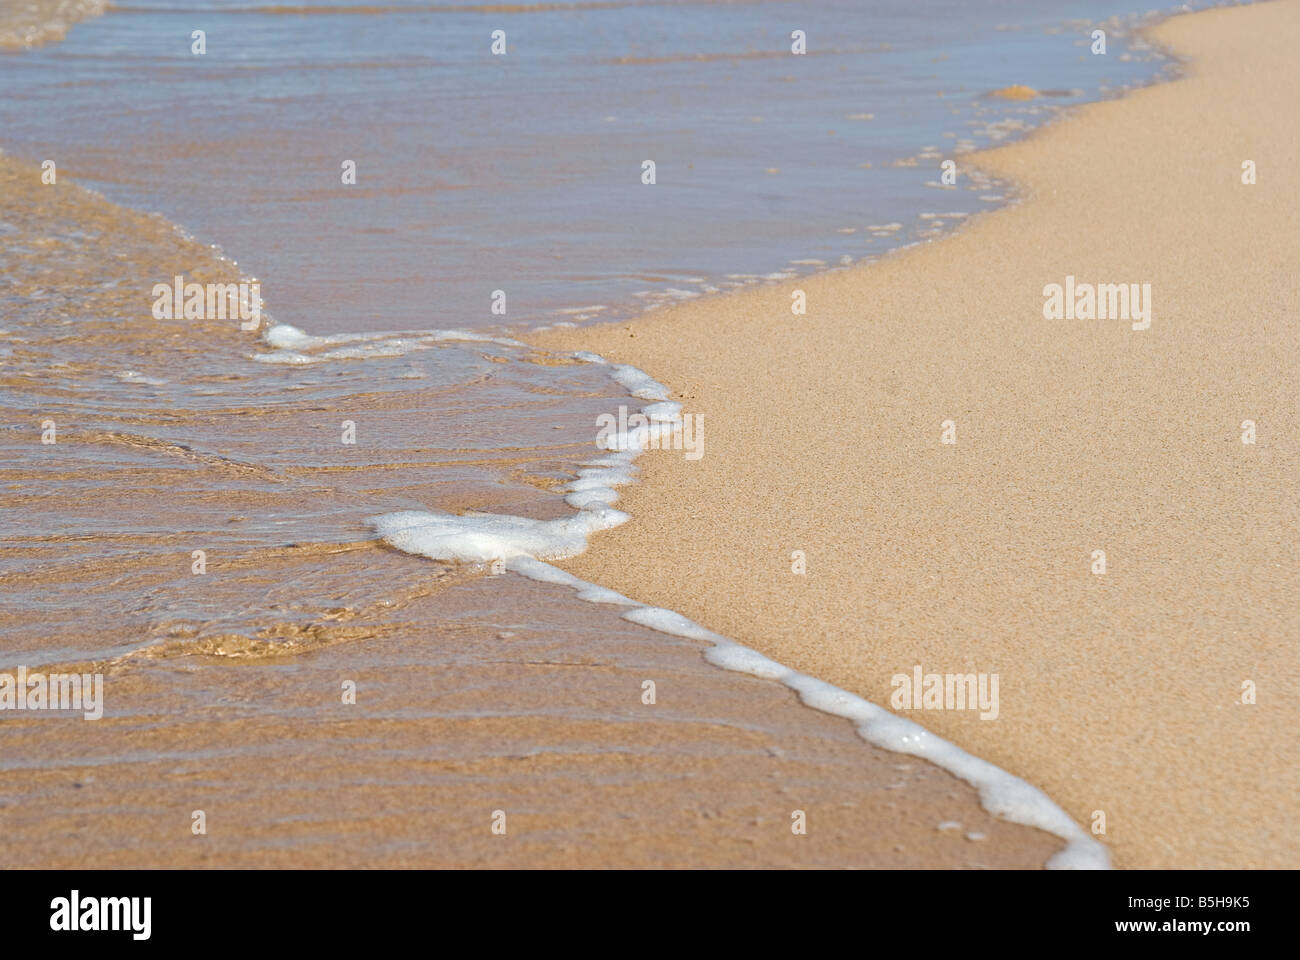 great image of a gentle peaceful wave on the beach - Stock Image